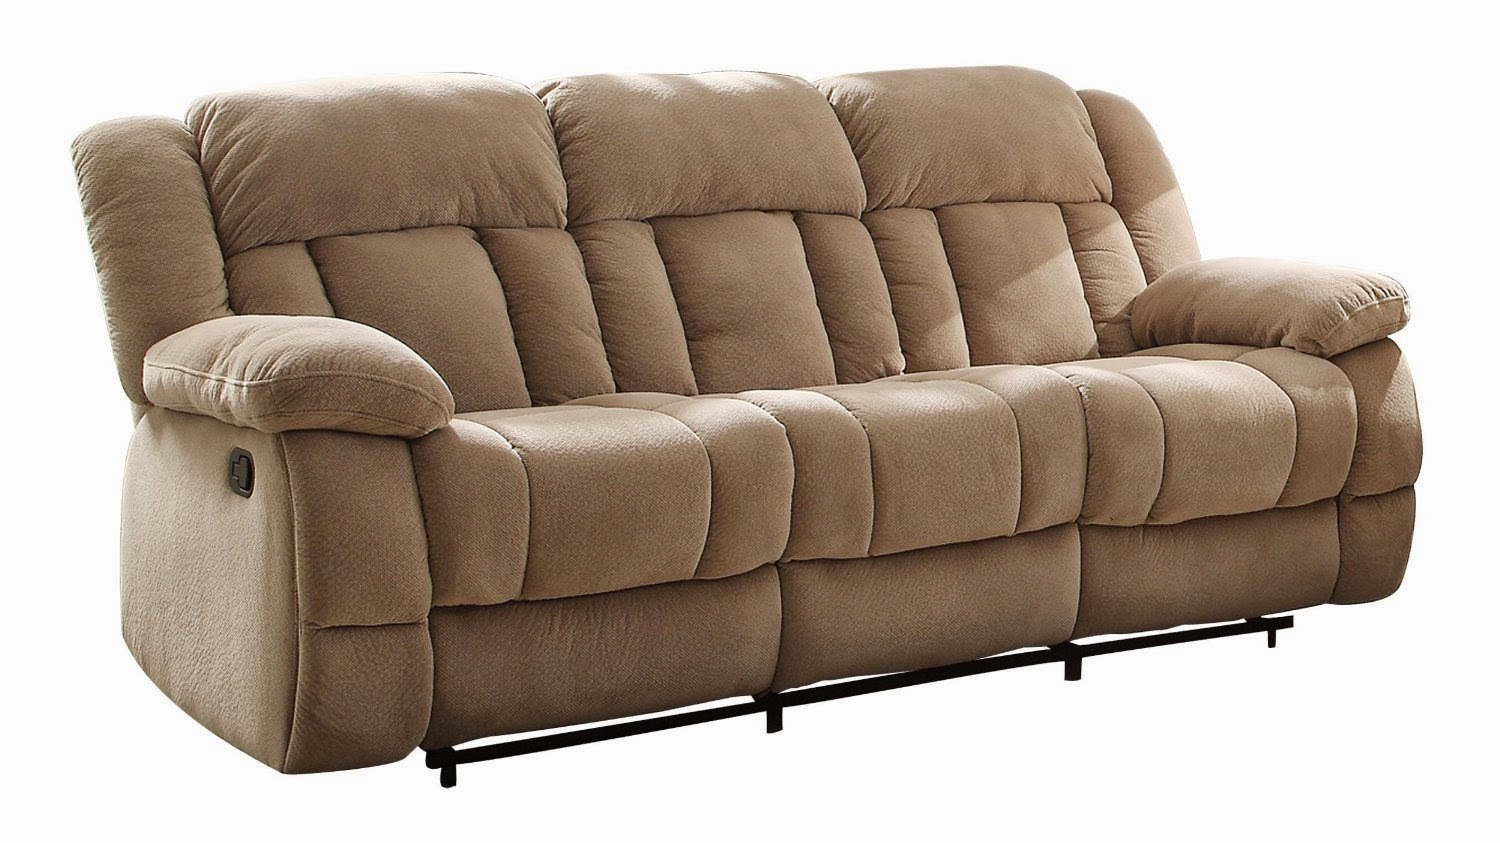 The Best Reclining Sofas Ratings Reviews: Eric Double